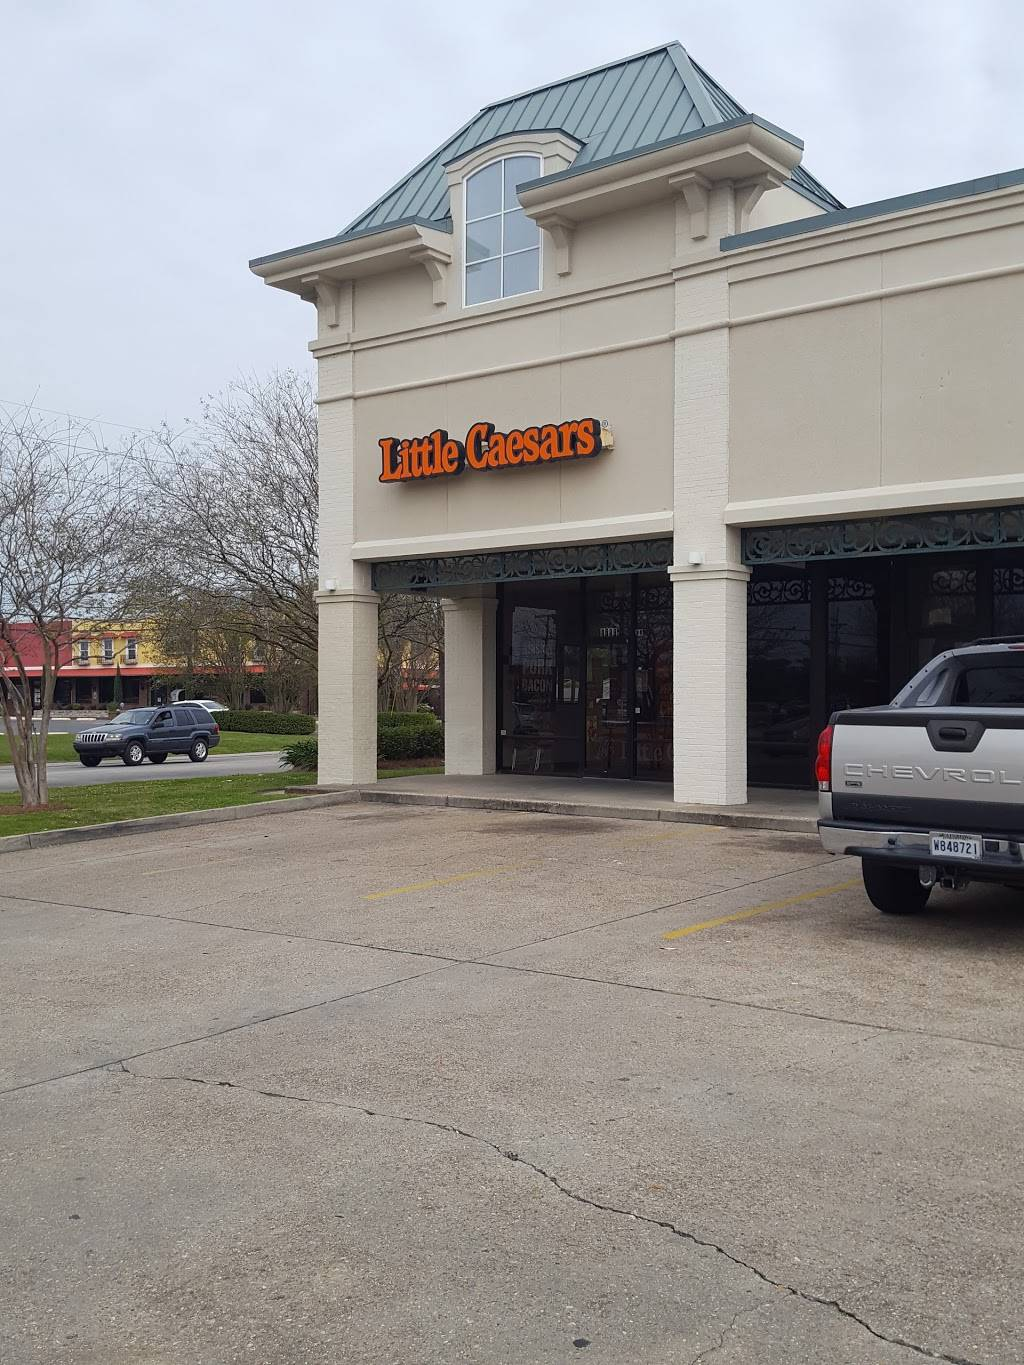 Little Caesars Pizza | meal takeaway | 1528 W Airline Hwy, Laplace, LA 70068, USA | 9856522455 OR +1 985-652-2455